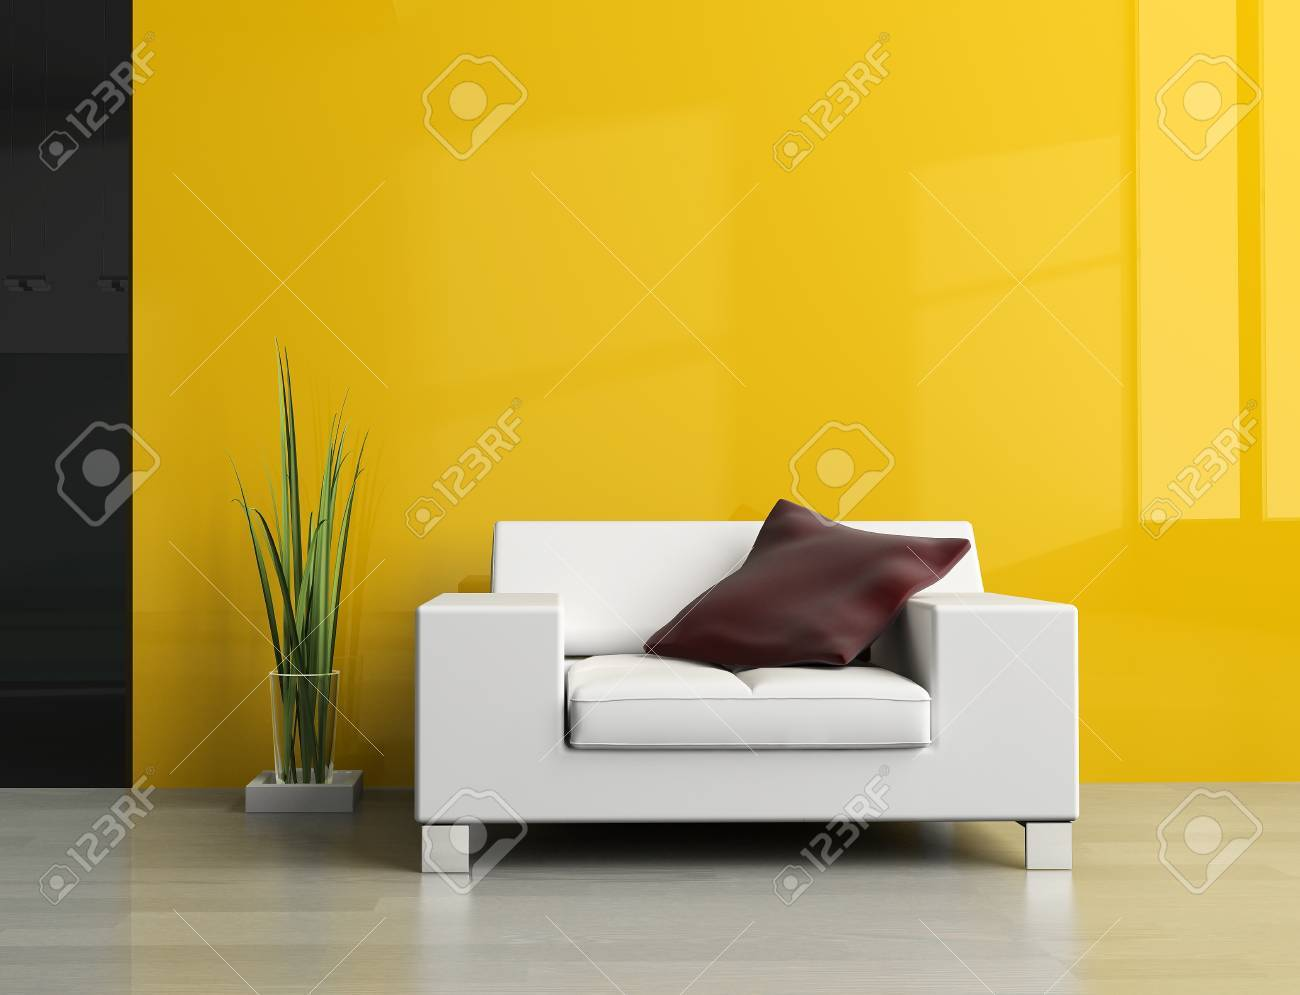 White sofa in a drawing room 3d image Stock Photo - 8886064